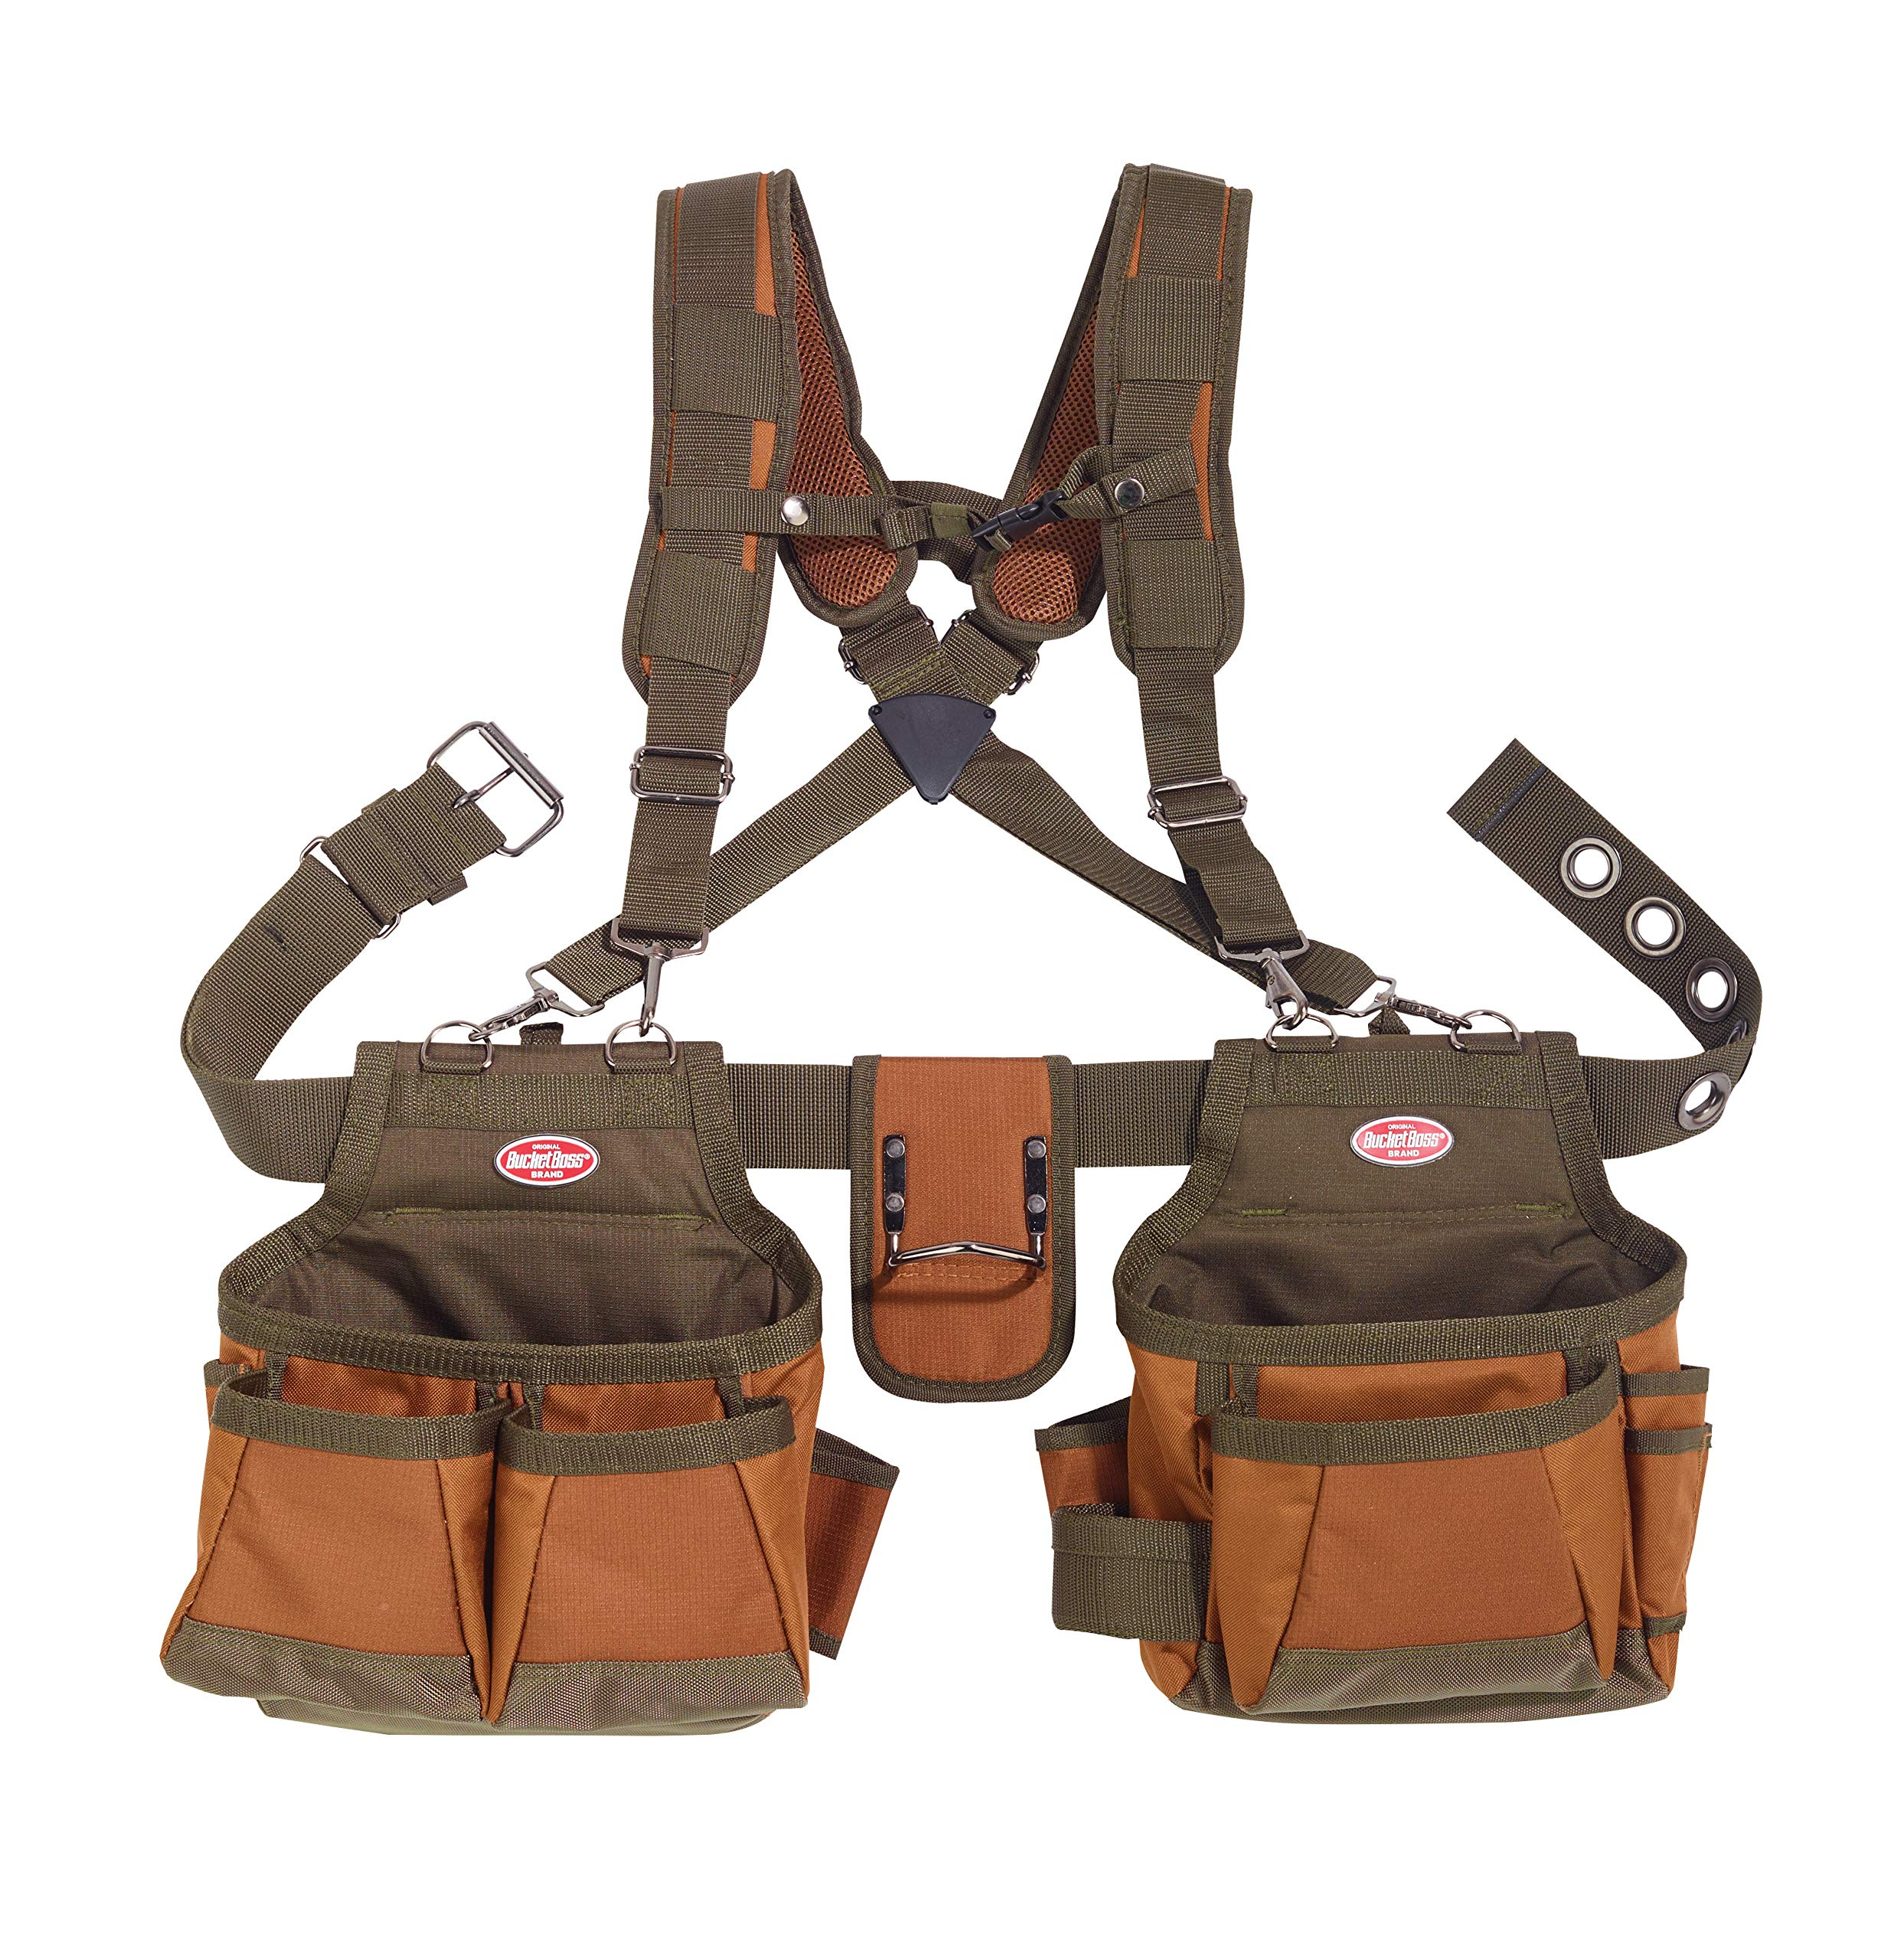 Bucket Boss Airlift 2 Bag Tool Belt with Suspenders in Brown, 50100 by Bucket Boss